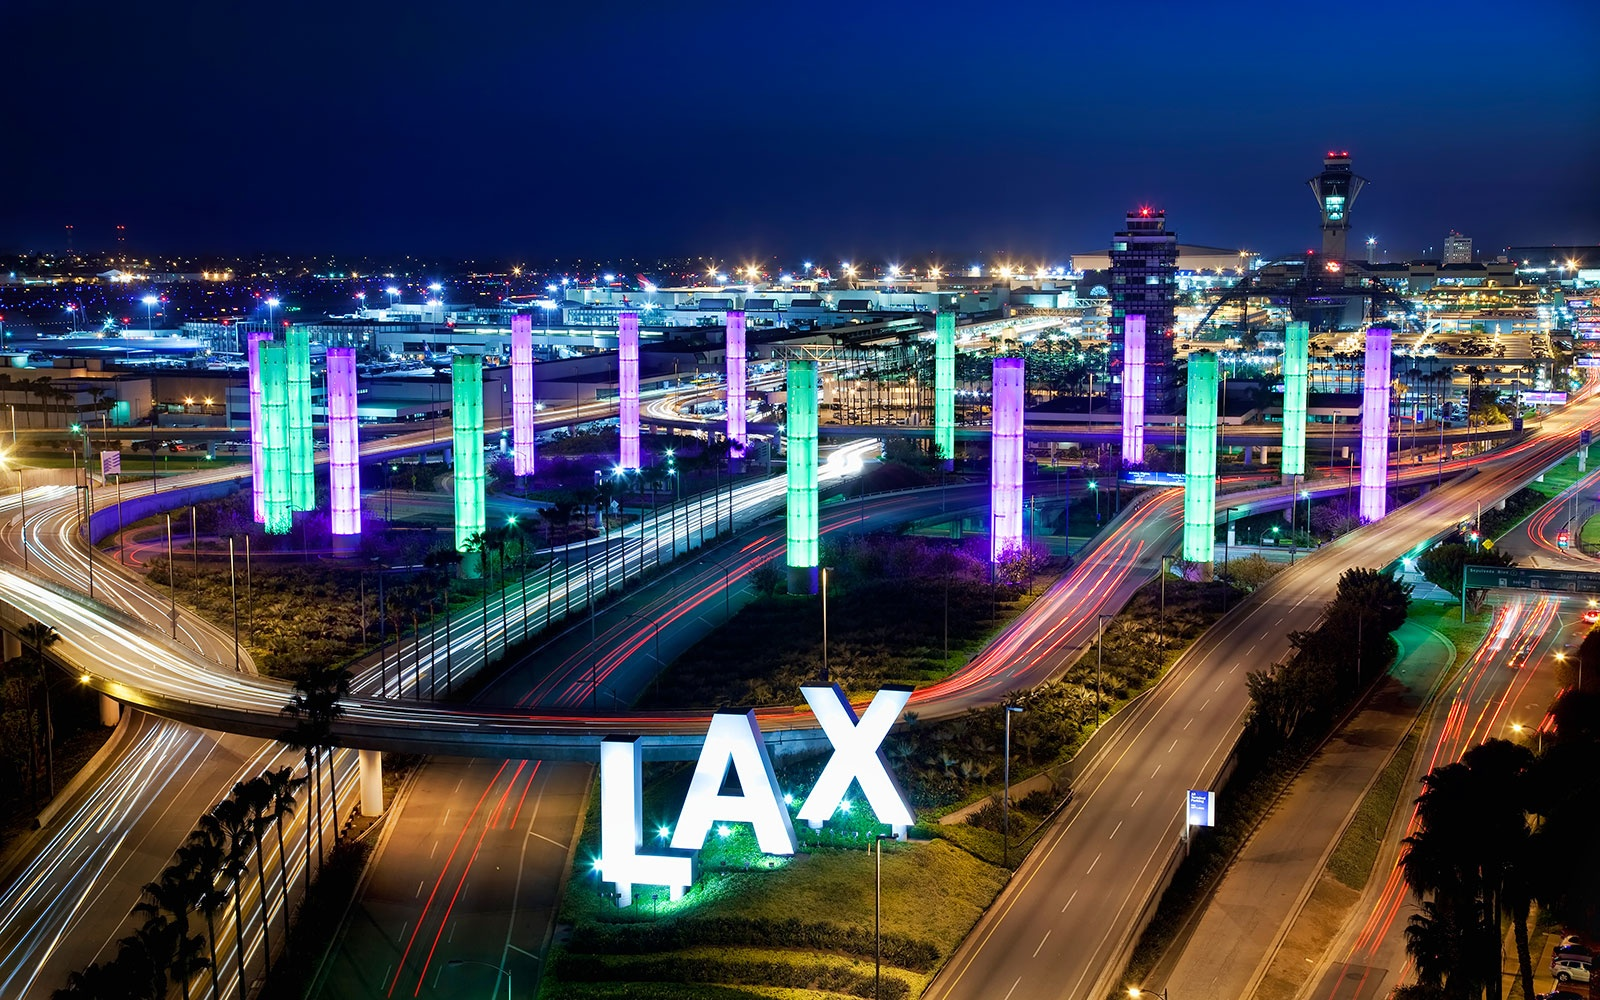 12. Los Angeles International Airport